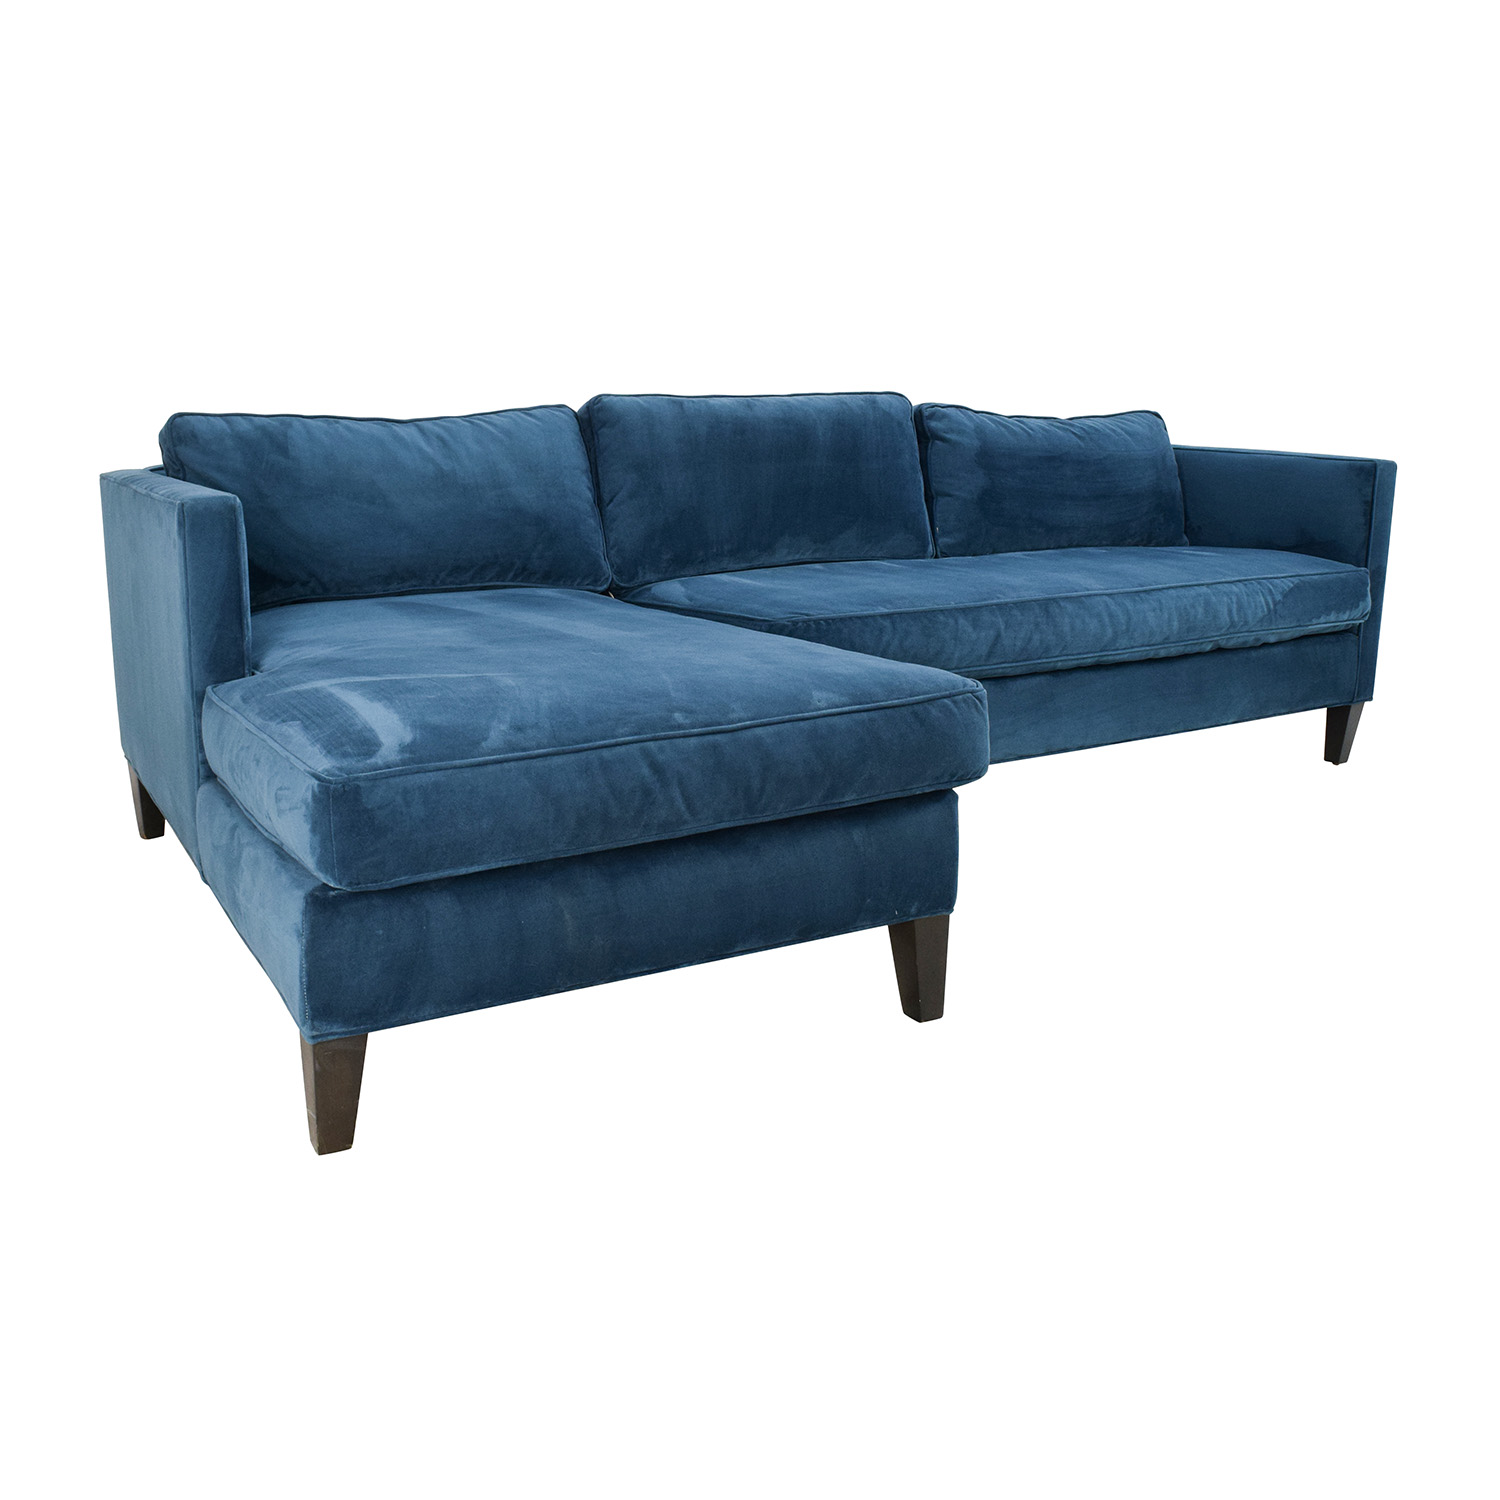 West Elm West Elm Dunham Sectional Sofa / Sofas